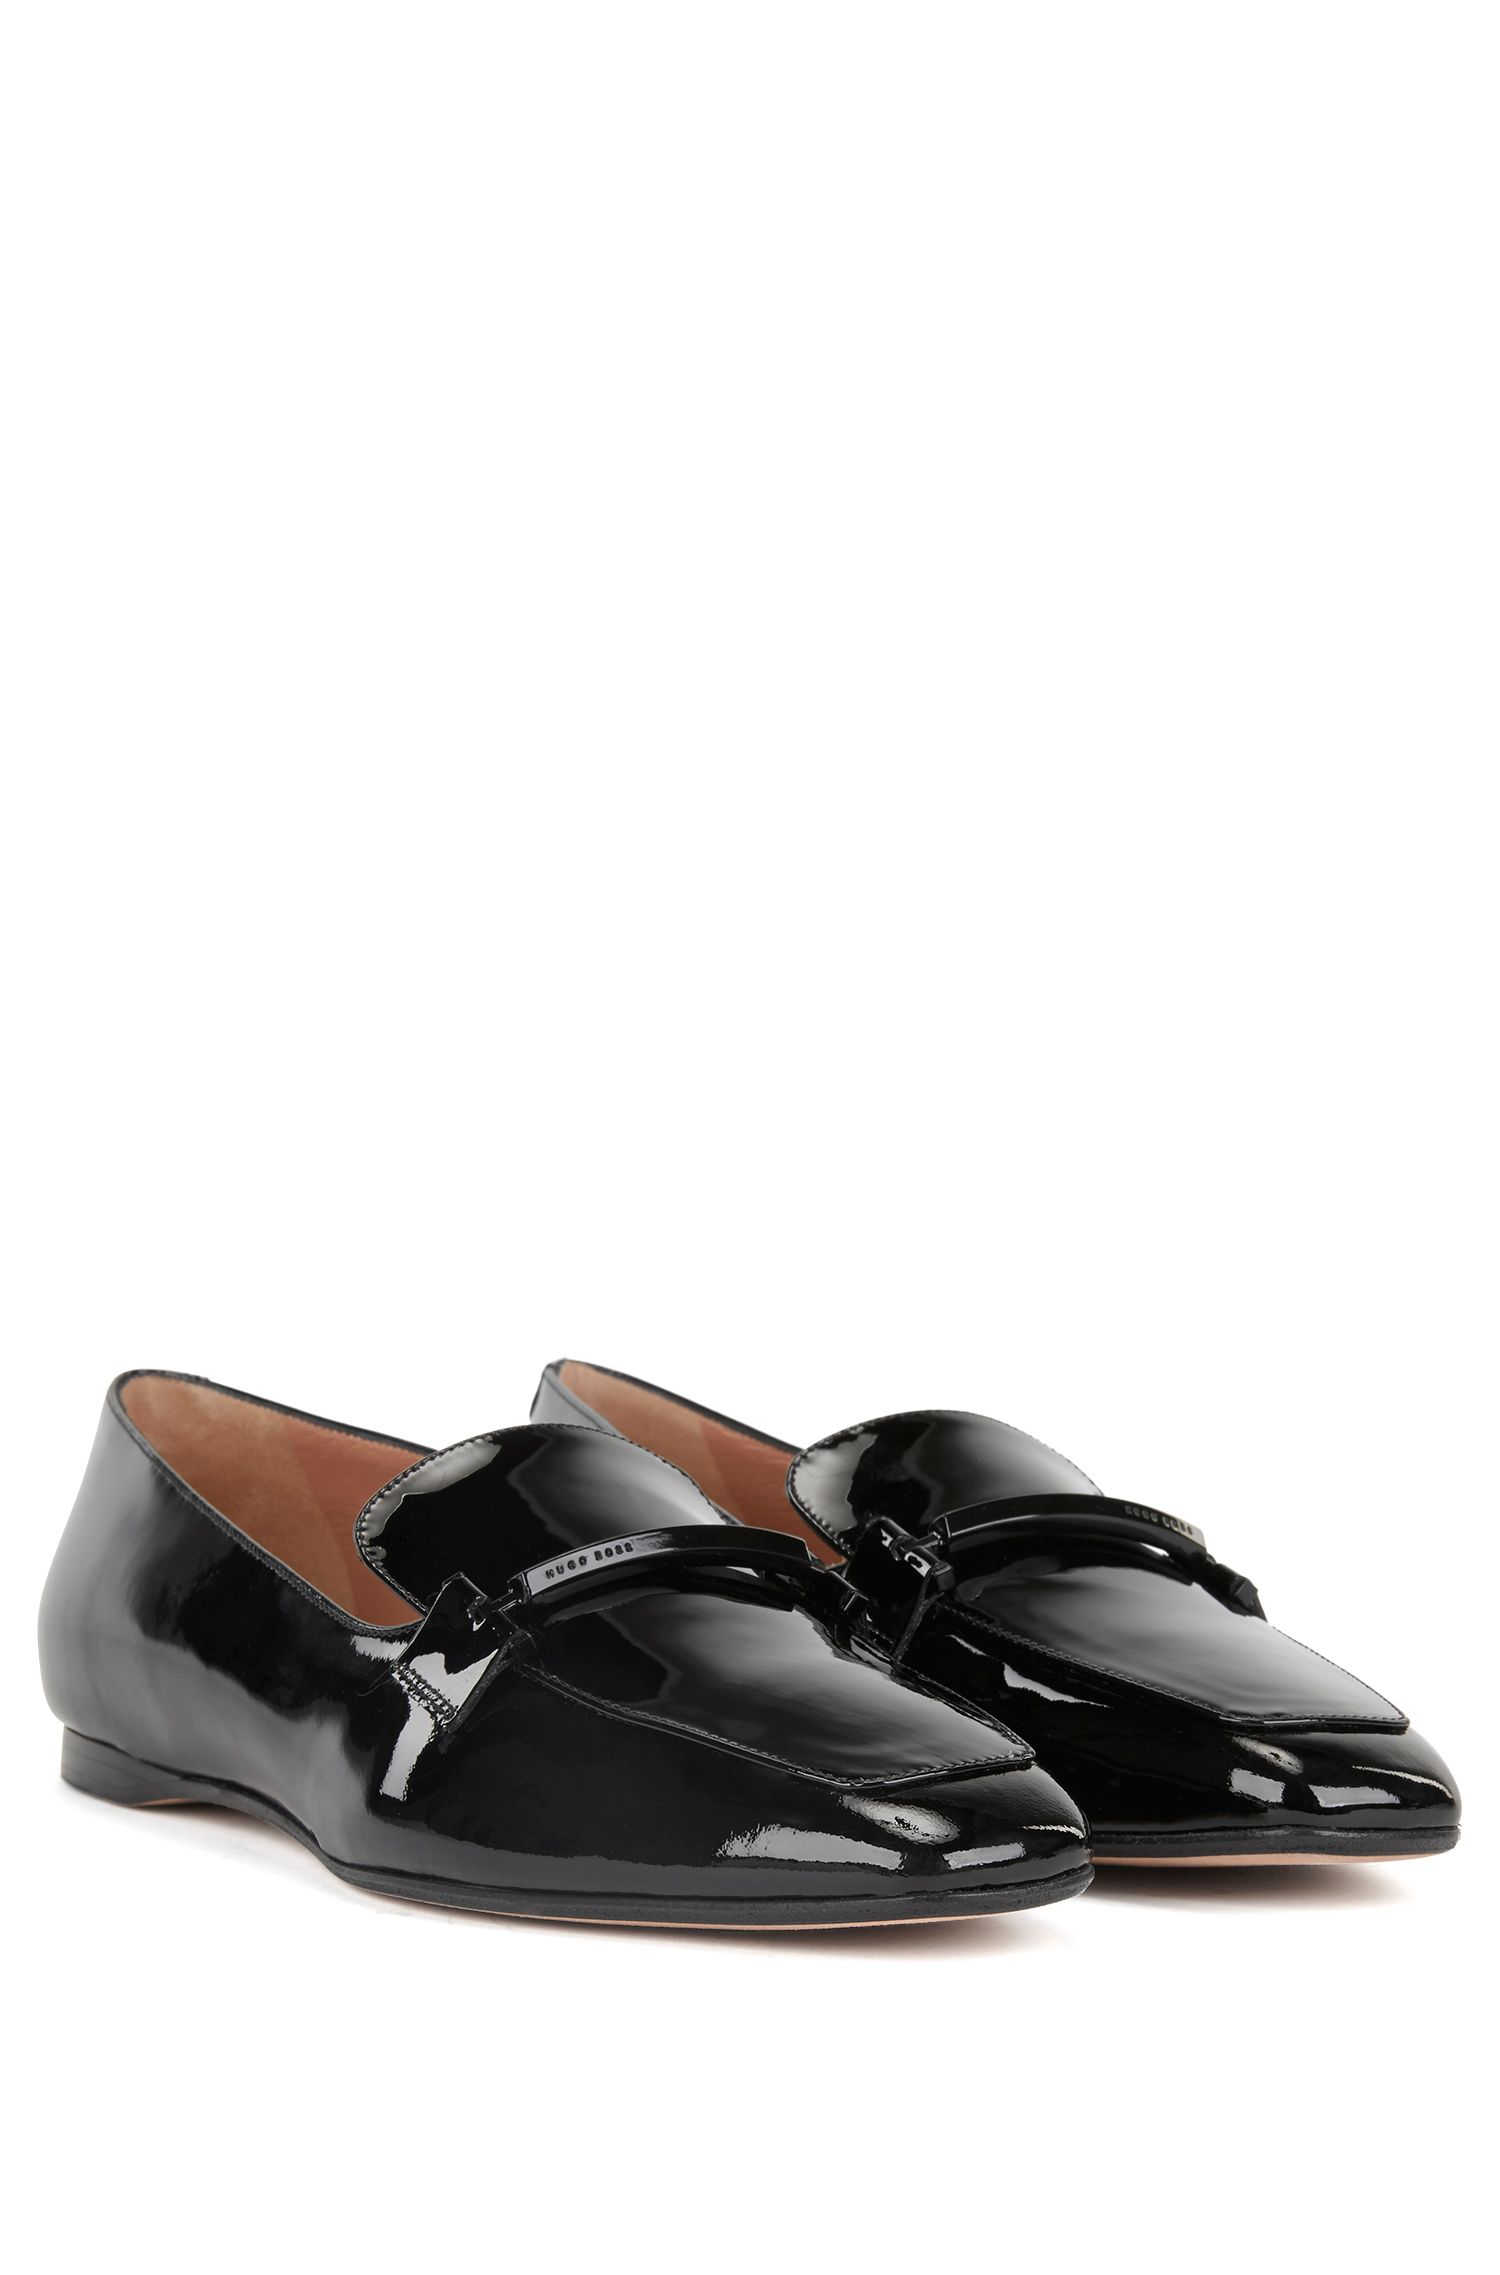 HUGO BOSS Italian-made patent-leather loafers with metal trim